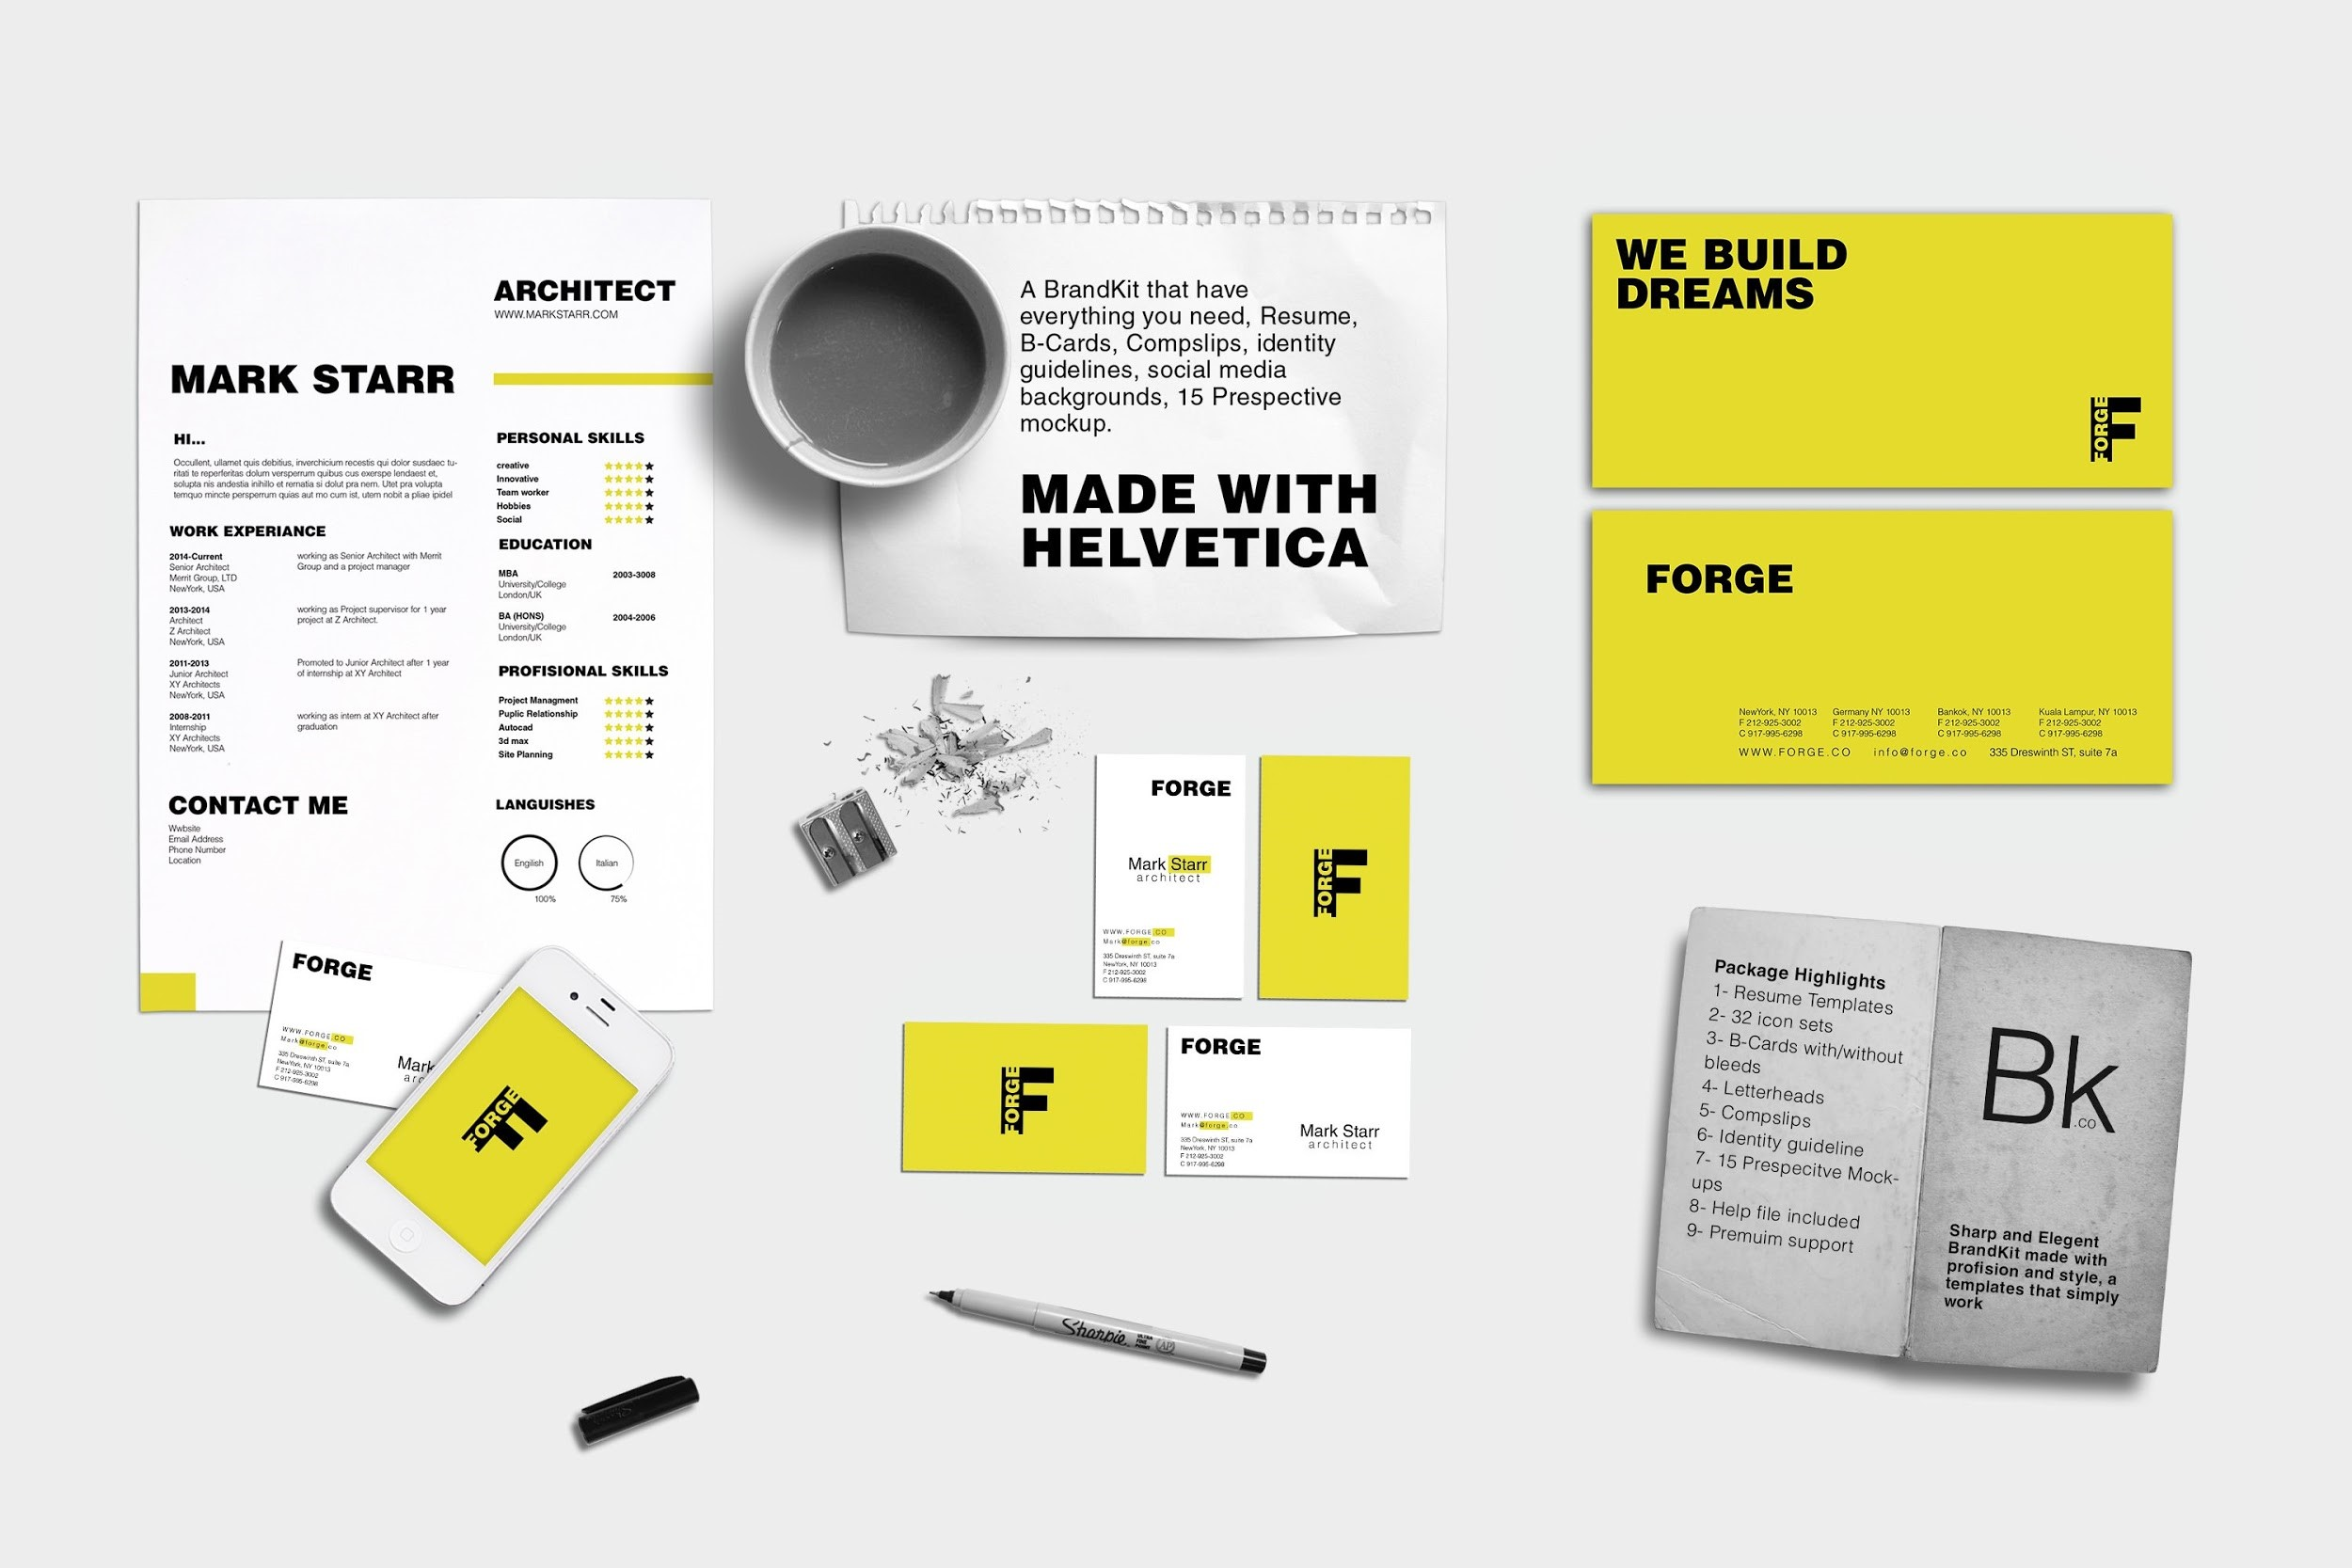 What-To-Include-In-A-Brand-Kit